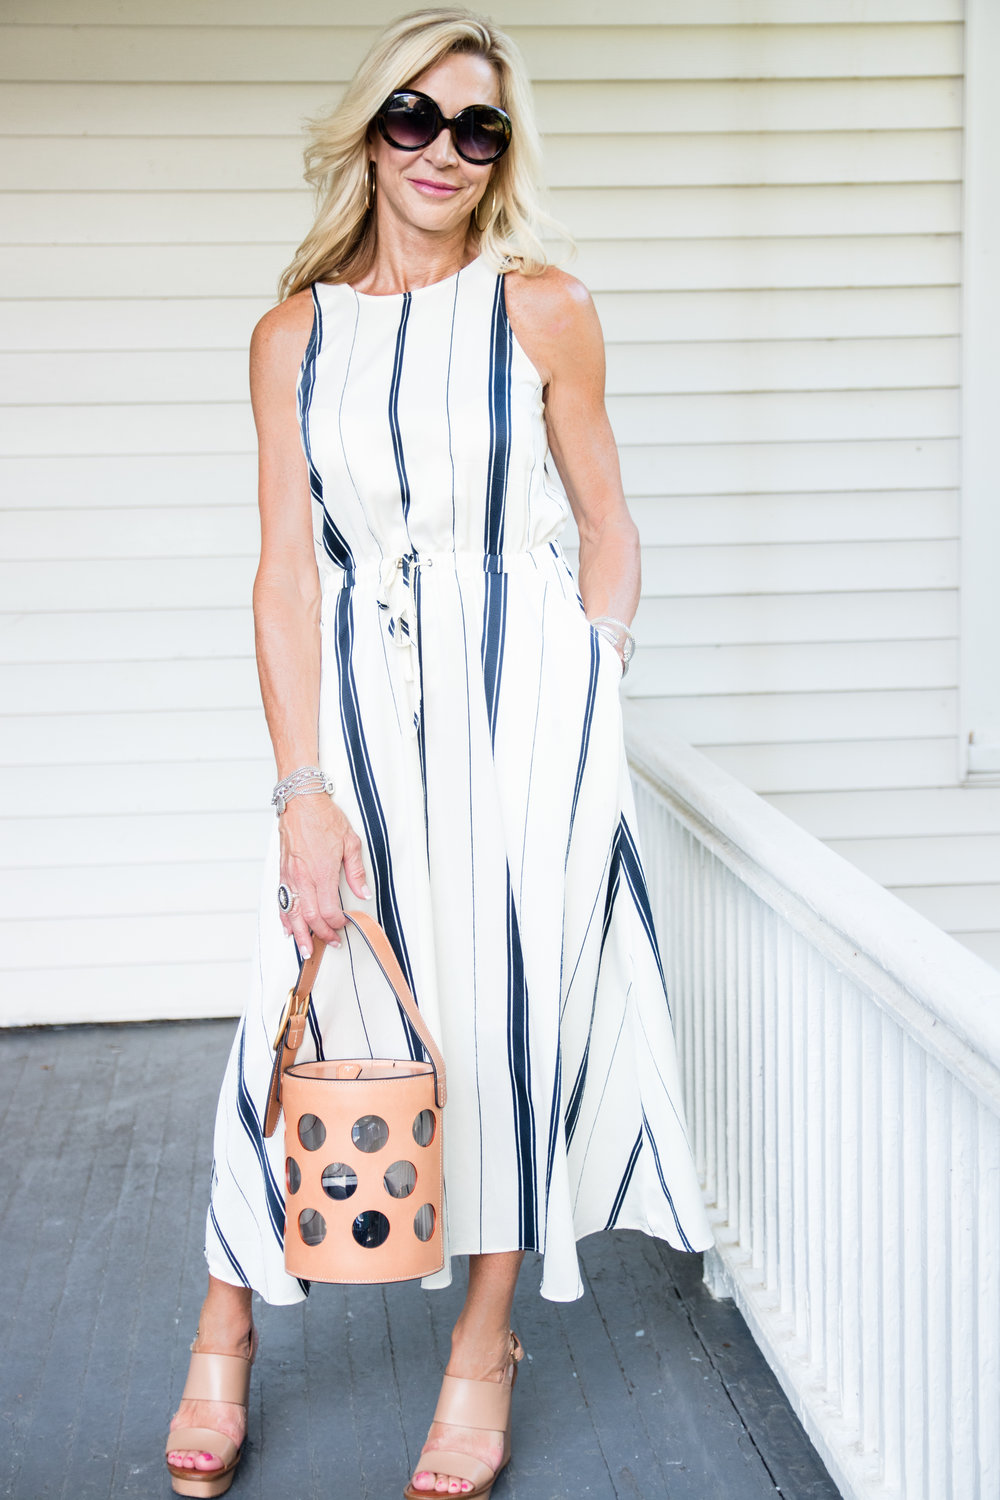 Loft Dress with Tory Burch bucket bag for July 4th